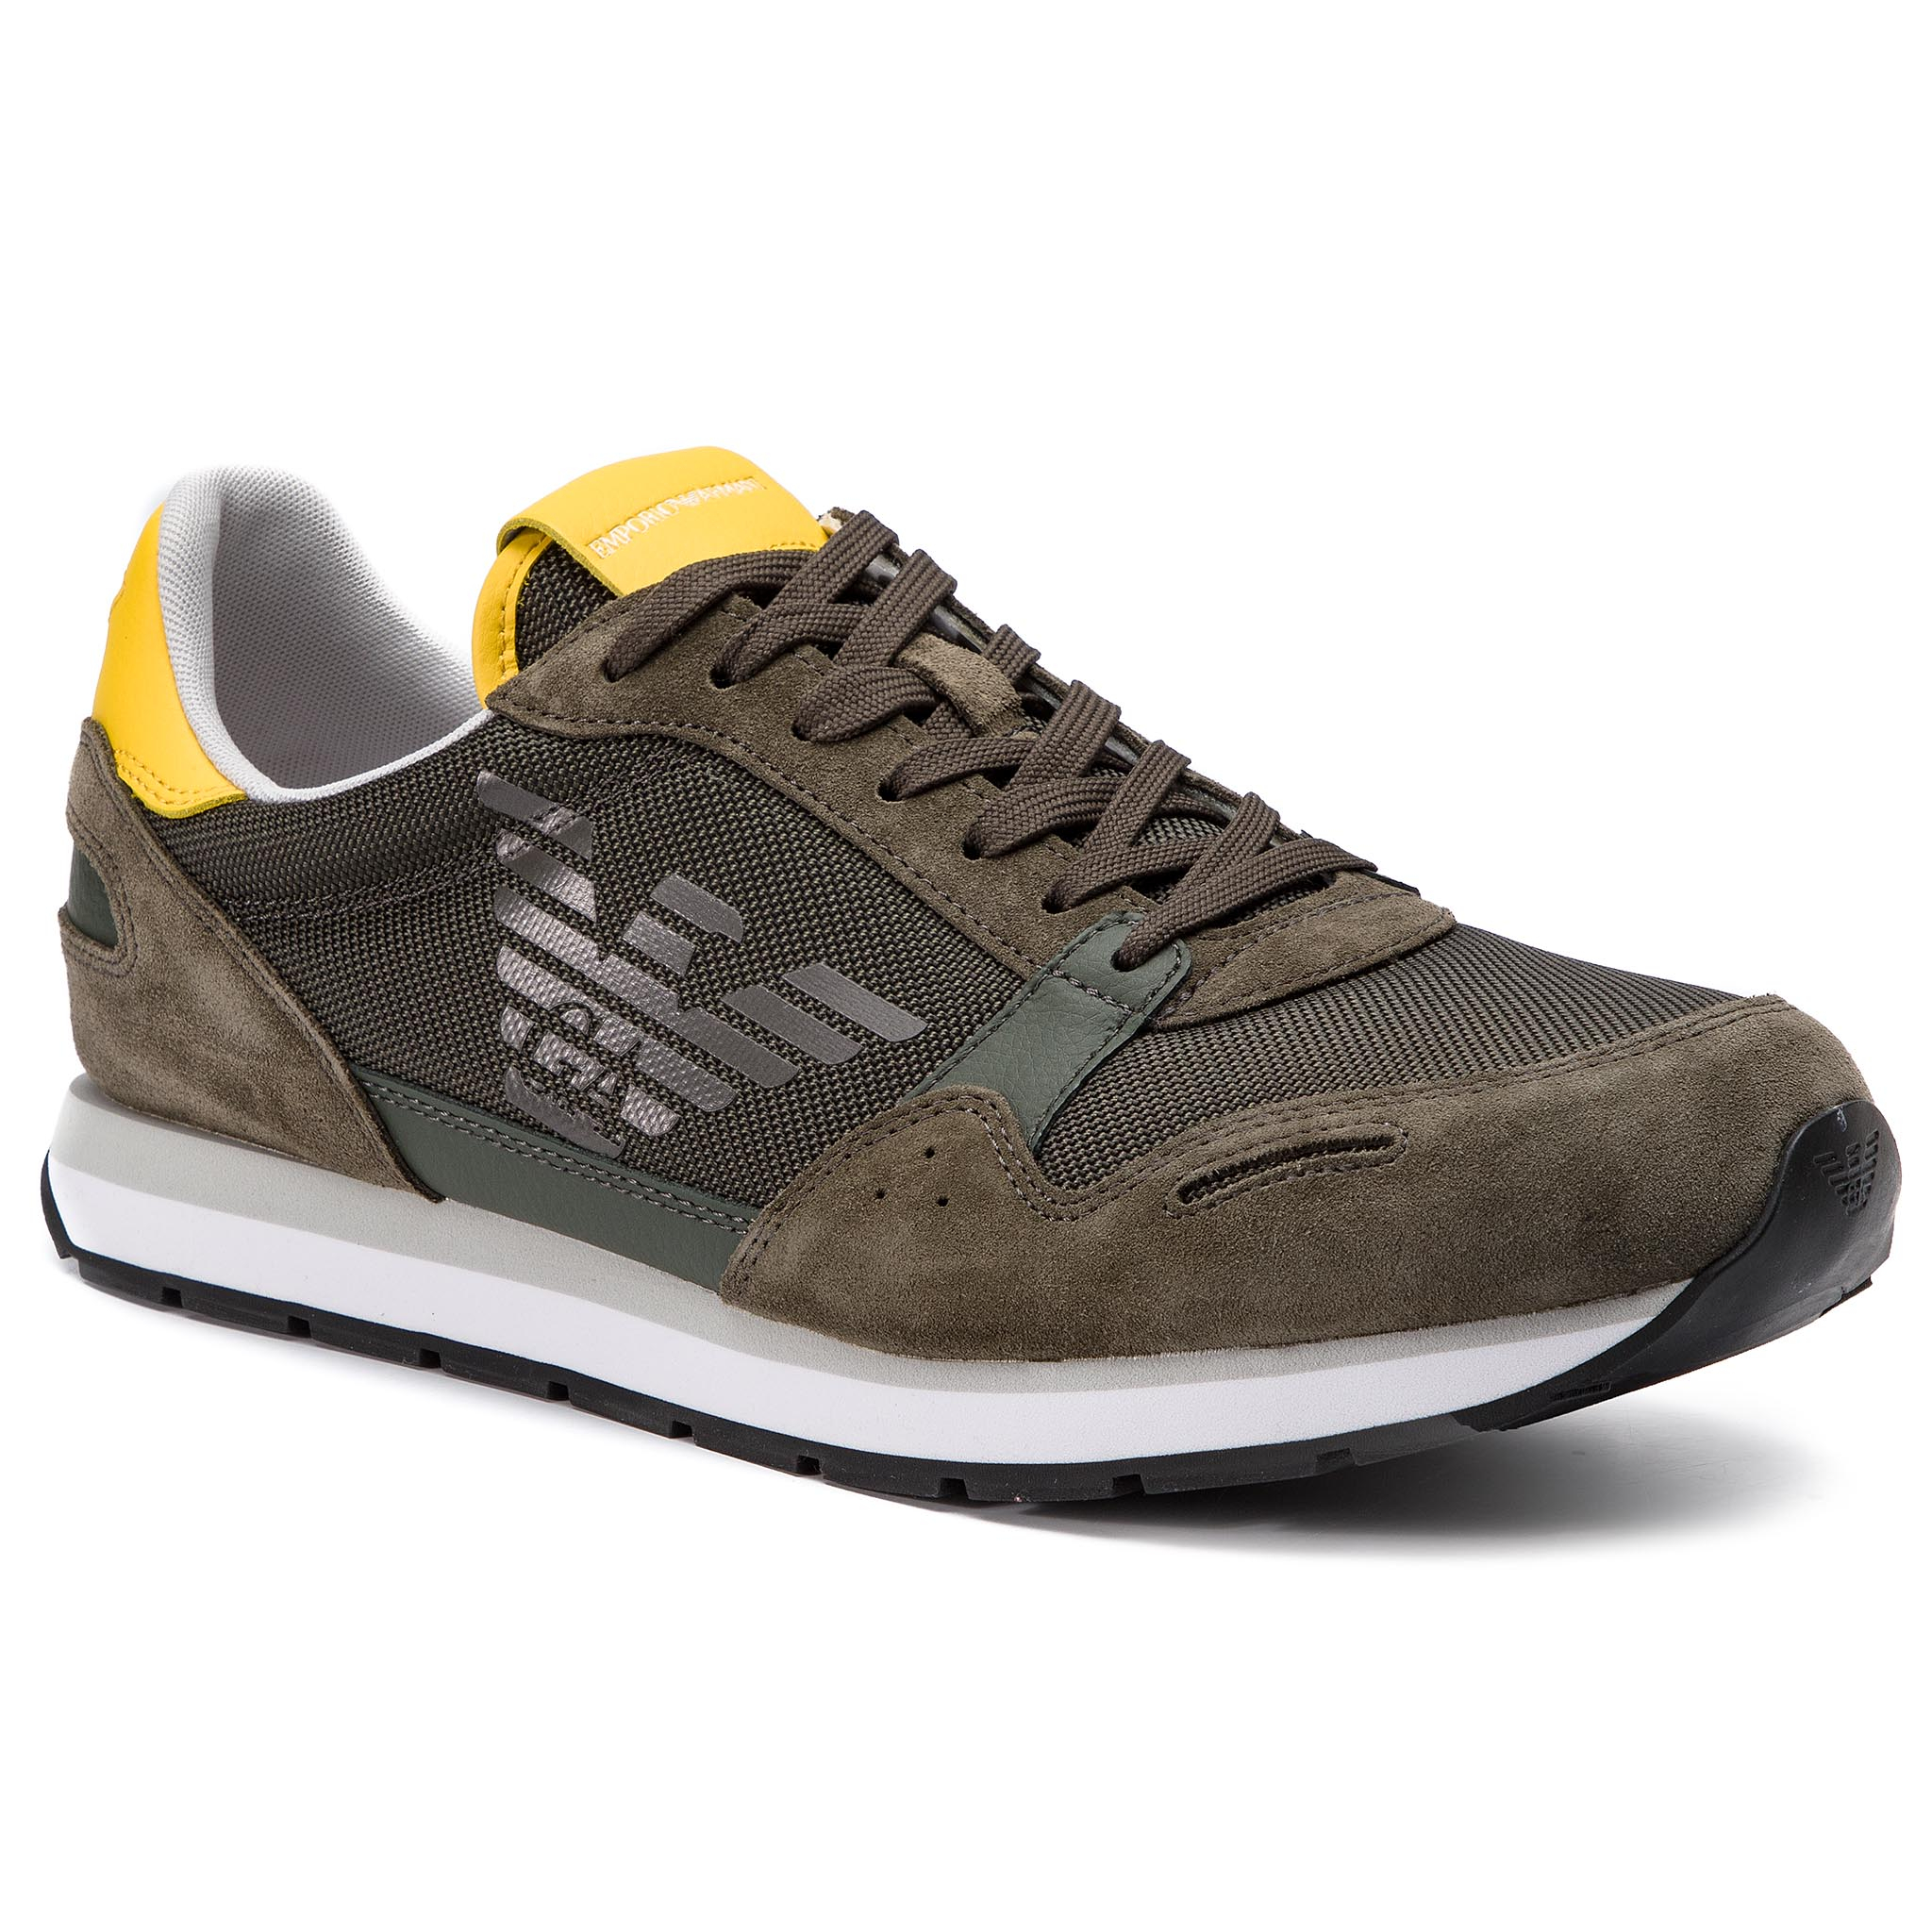 34f490497f3 Men's shoes, men's footwear – see the newest models on efootwear.eu ...